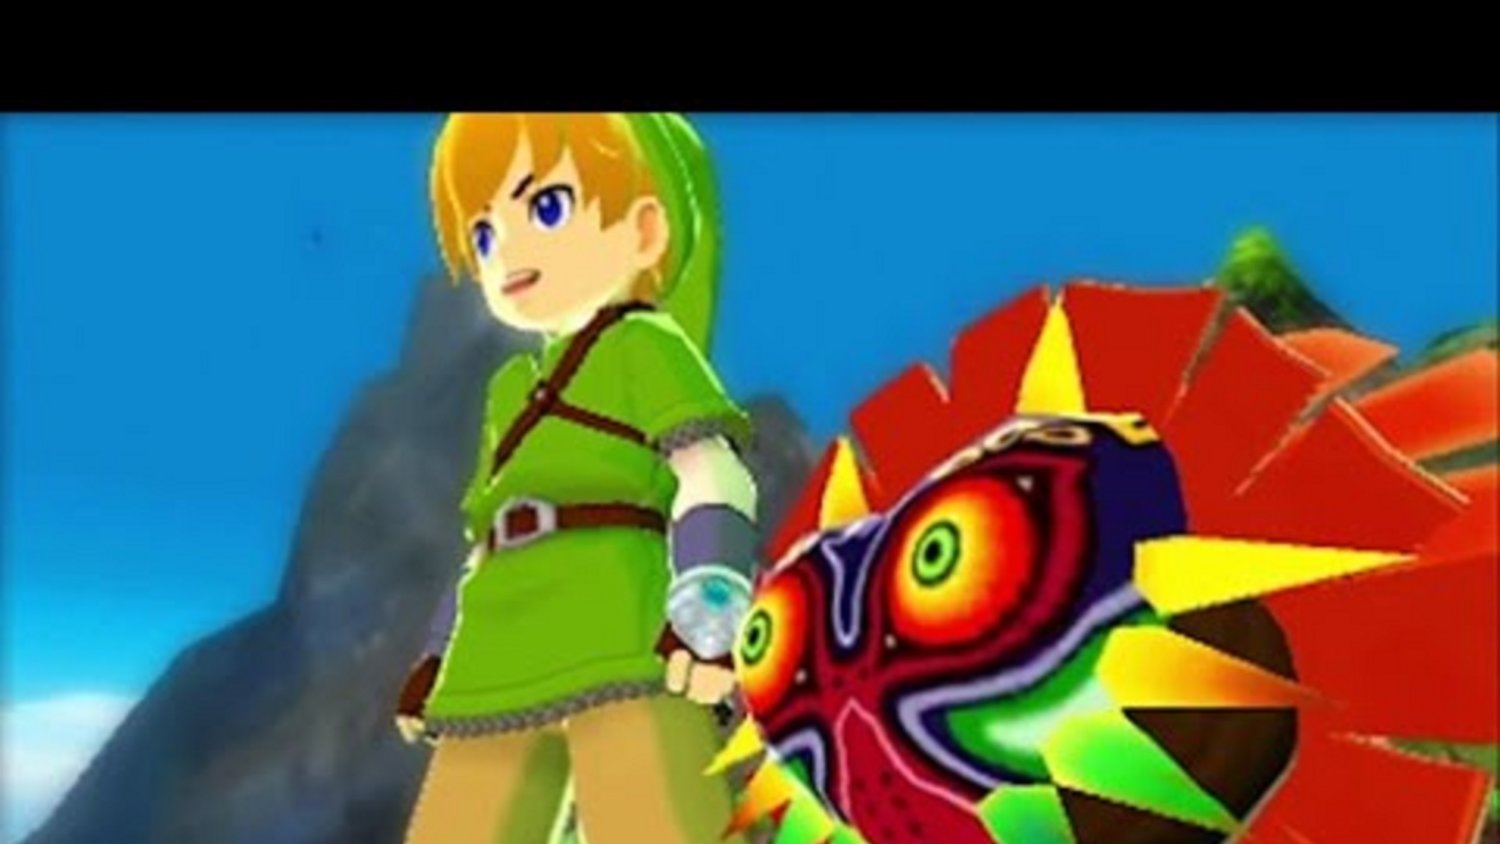 Link Will Be A Playable Character In The Japanese Monster Hunter